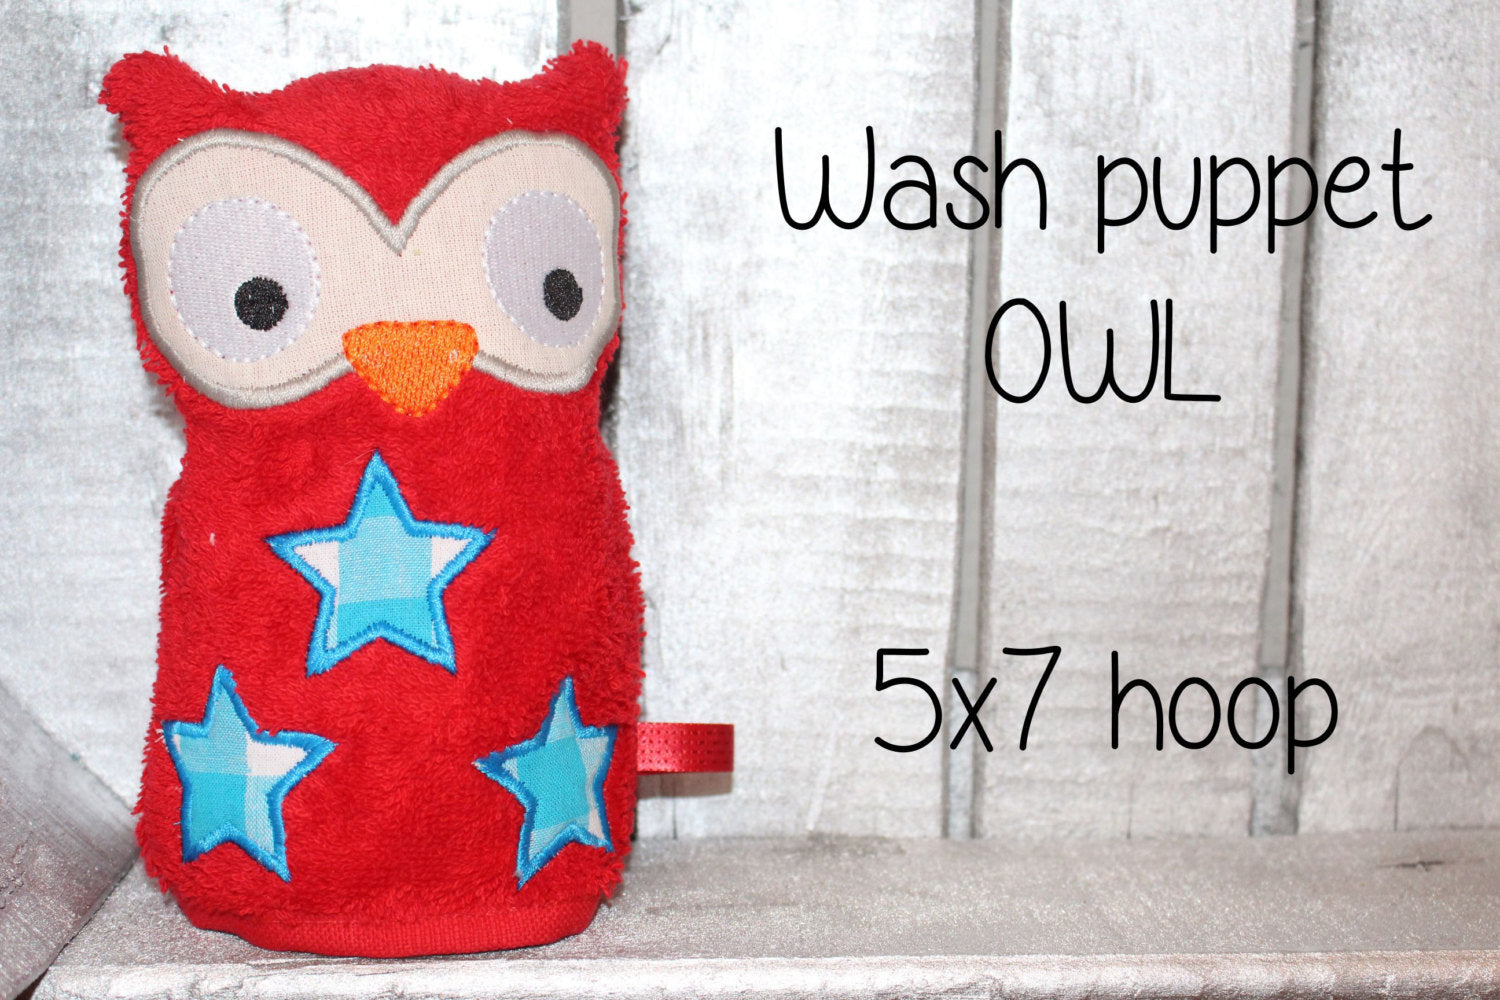 OWL Wash Puppet - 5x7 hoop - ITH - machine embroidery file - digital download - millymellydesigns